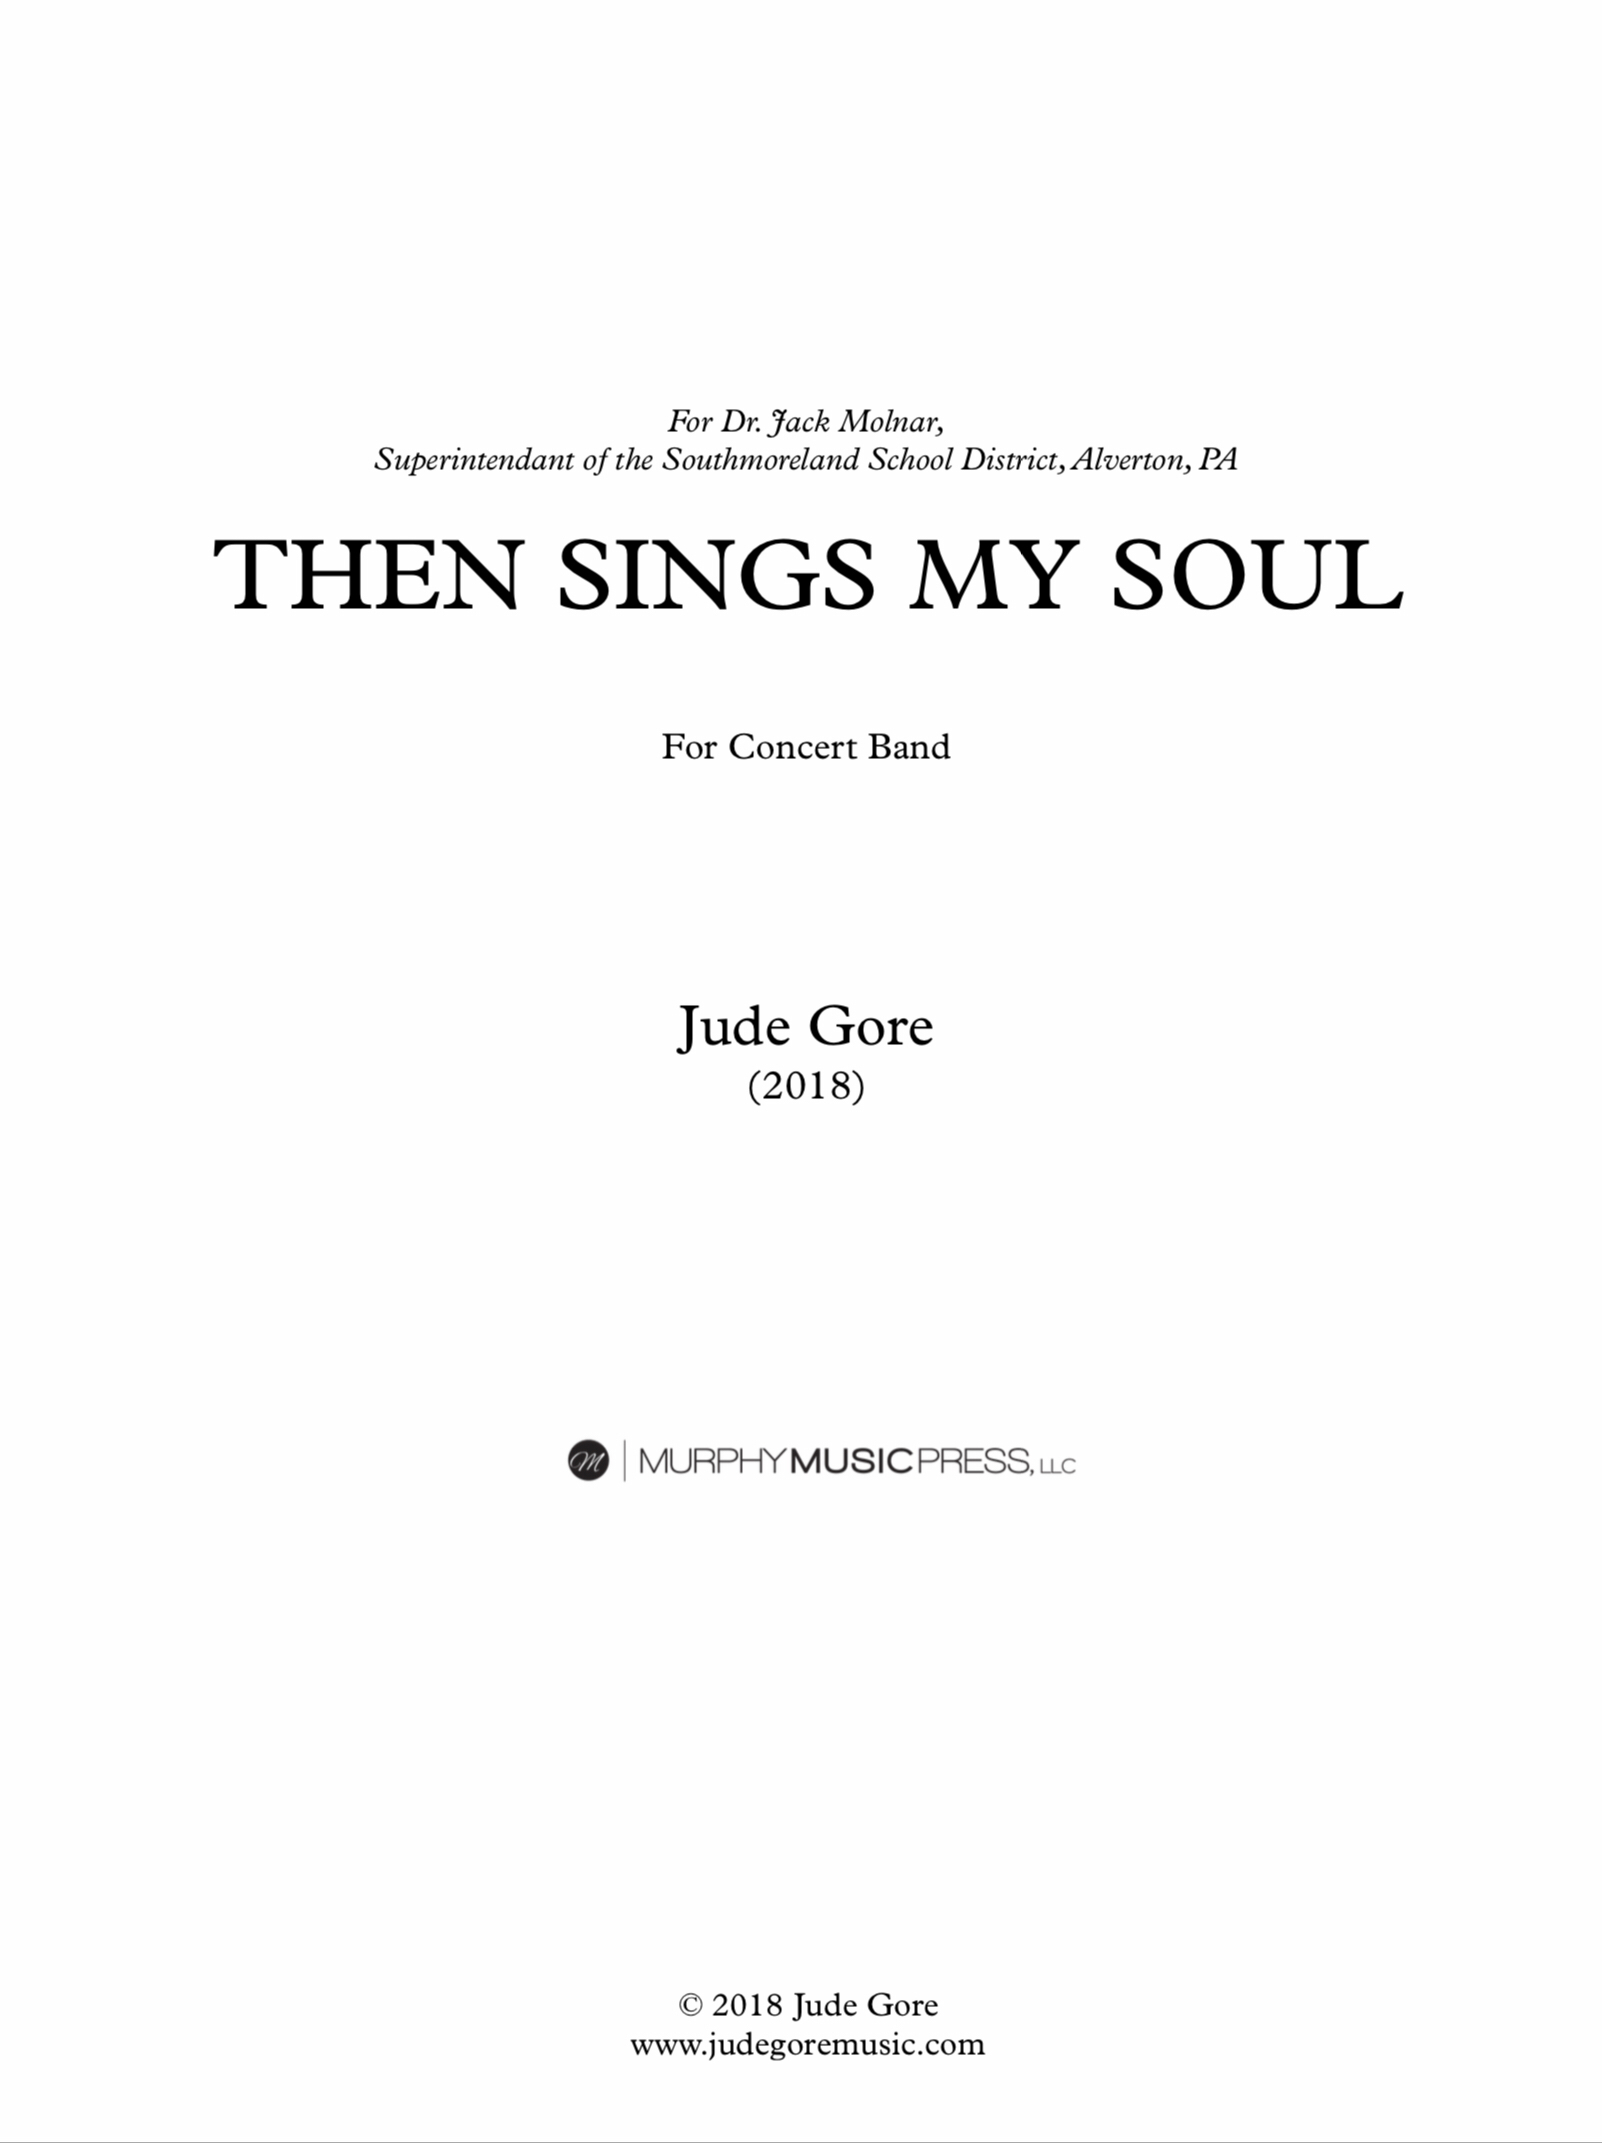 Then Sings My Soul (Score Only) by Jude Gore